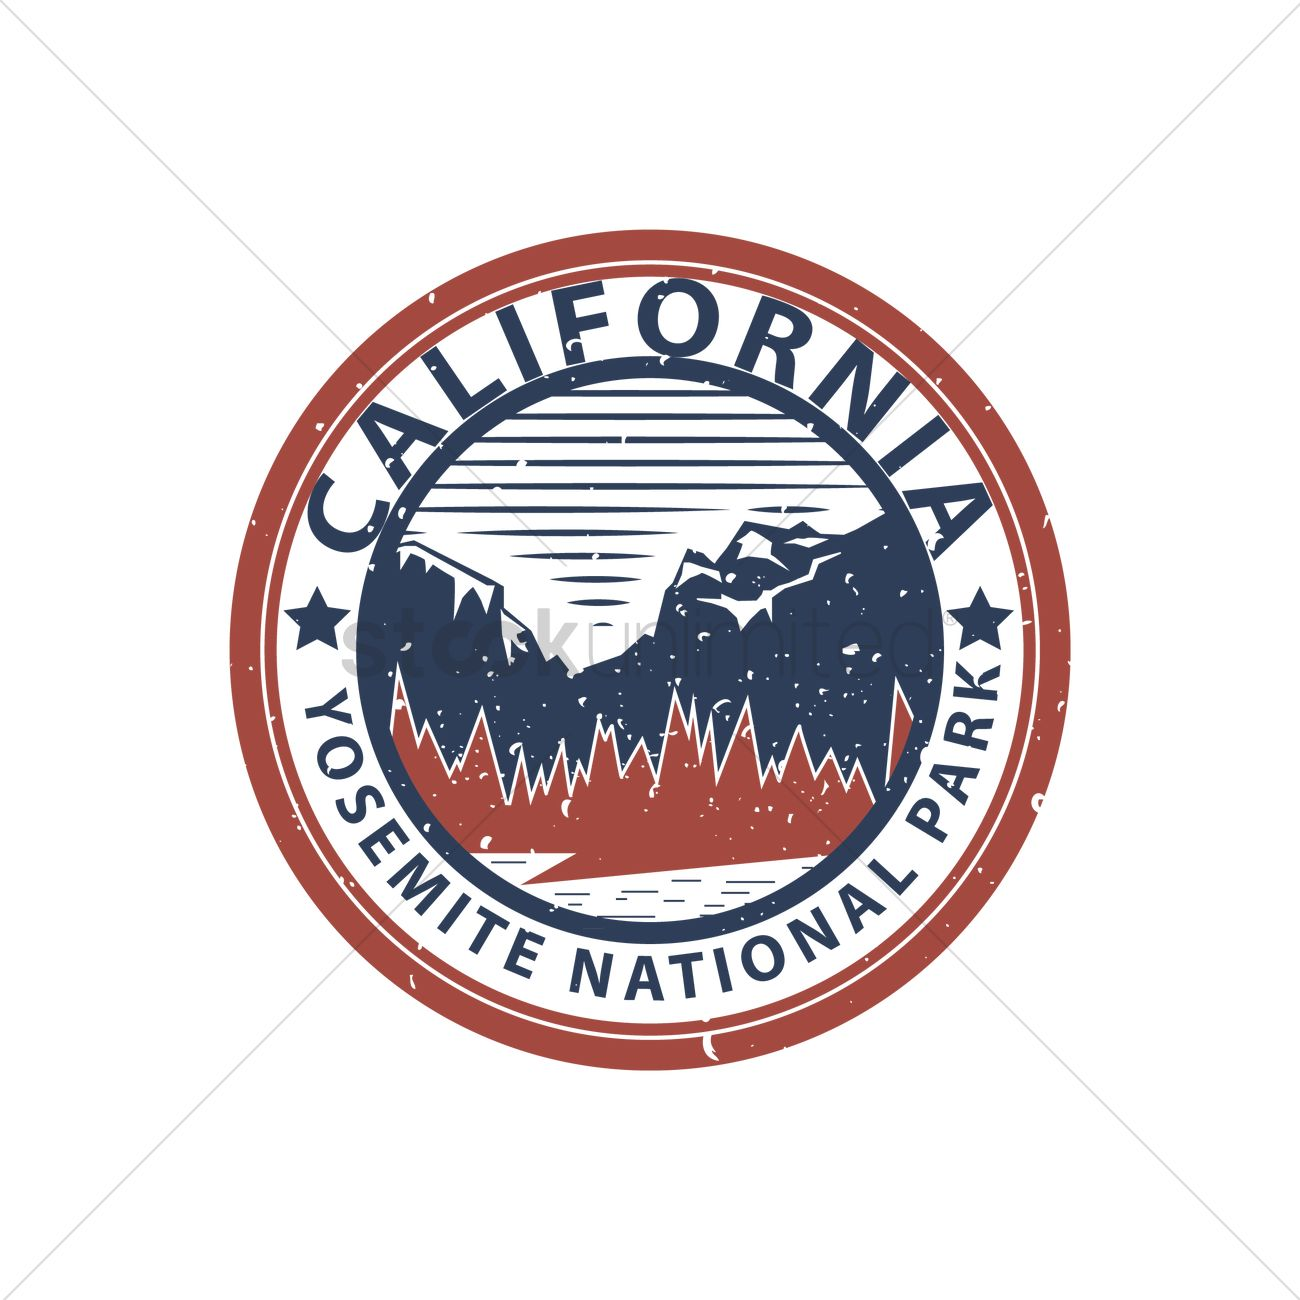 Yosemite National Park svg #15, Download drawings